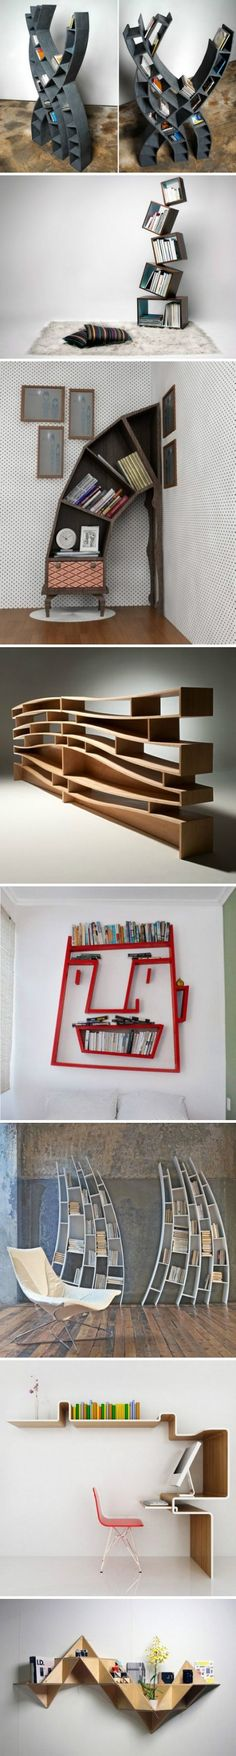 Unique DIY Book Shelves